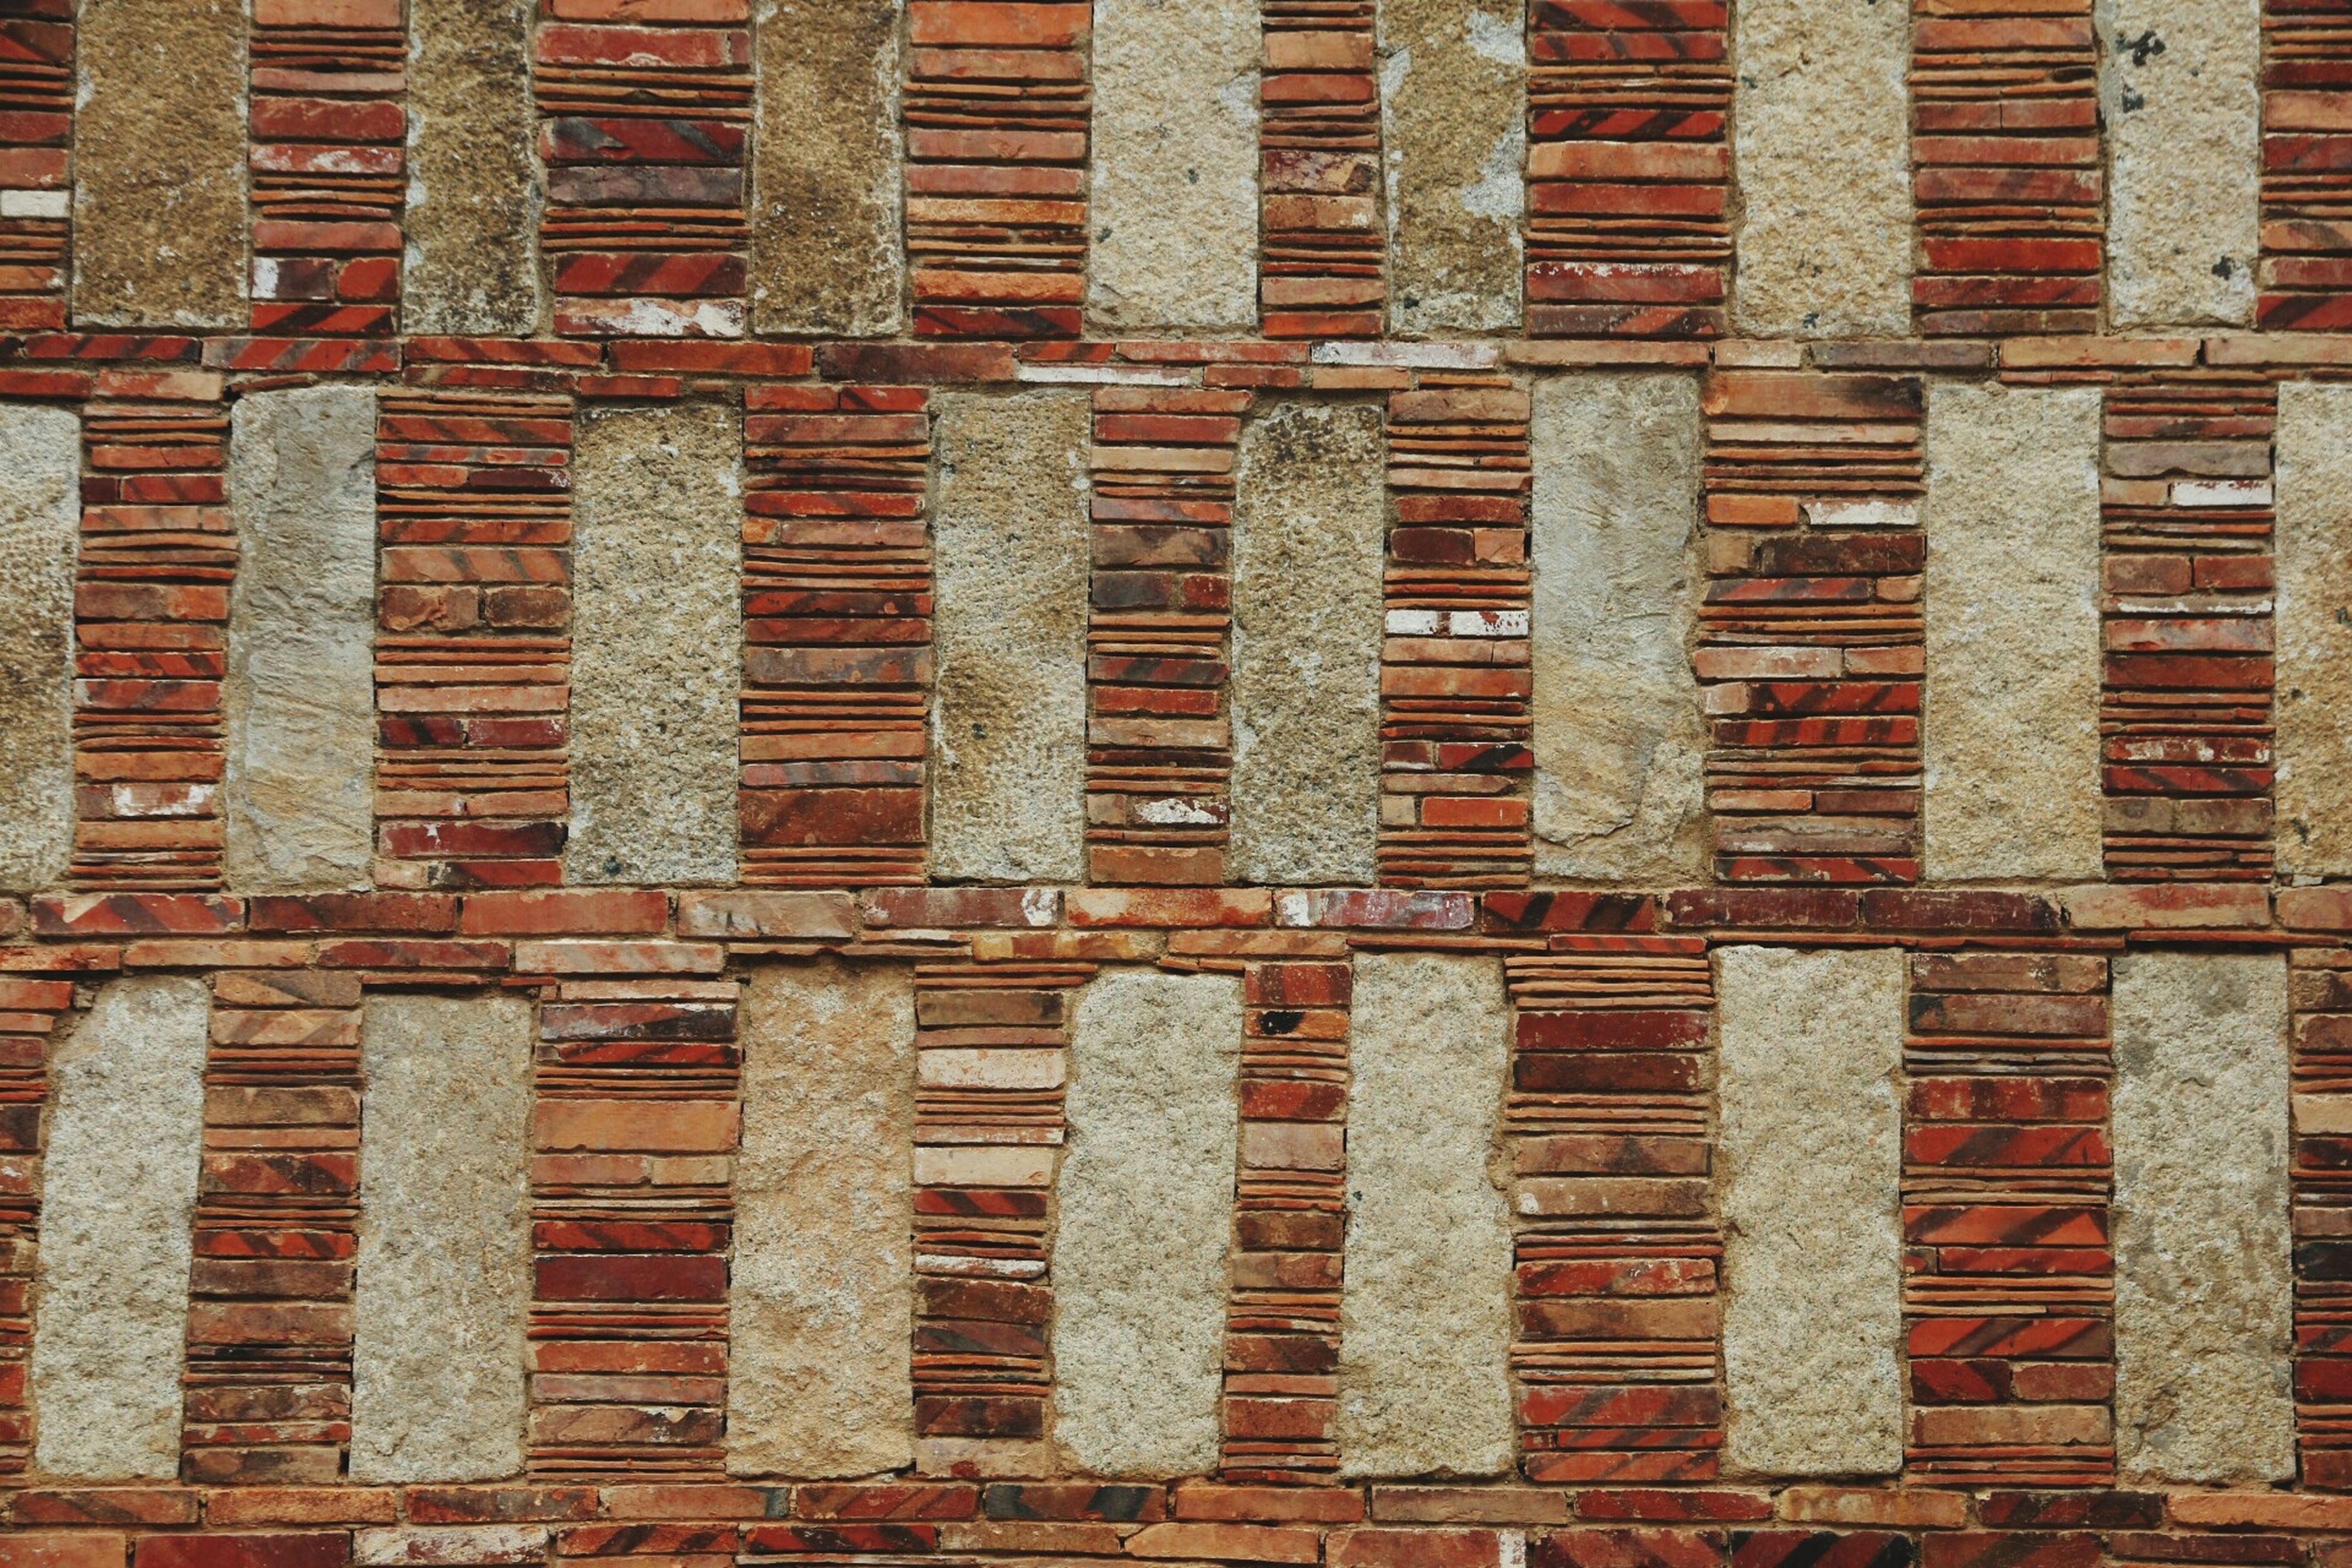 architecture, building exterior, built structure, window, full frame, building, backgrounds, brick wall, repetition, pattern, in a row, low angle view, city, old, outdoors, day, wall - building feature, residential building, brick, side by side